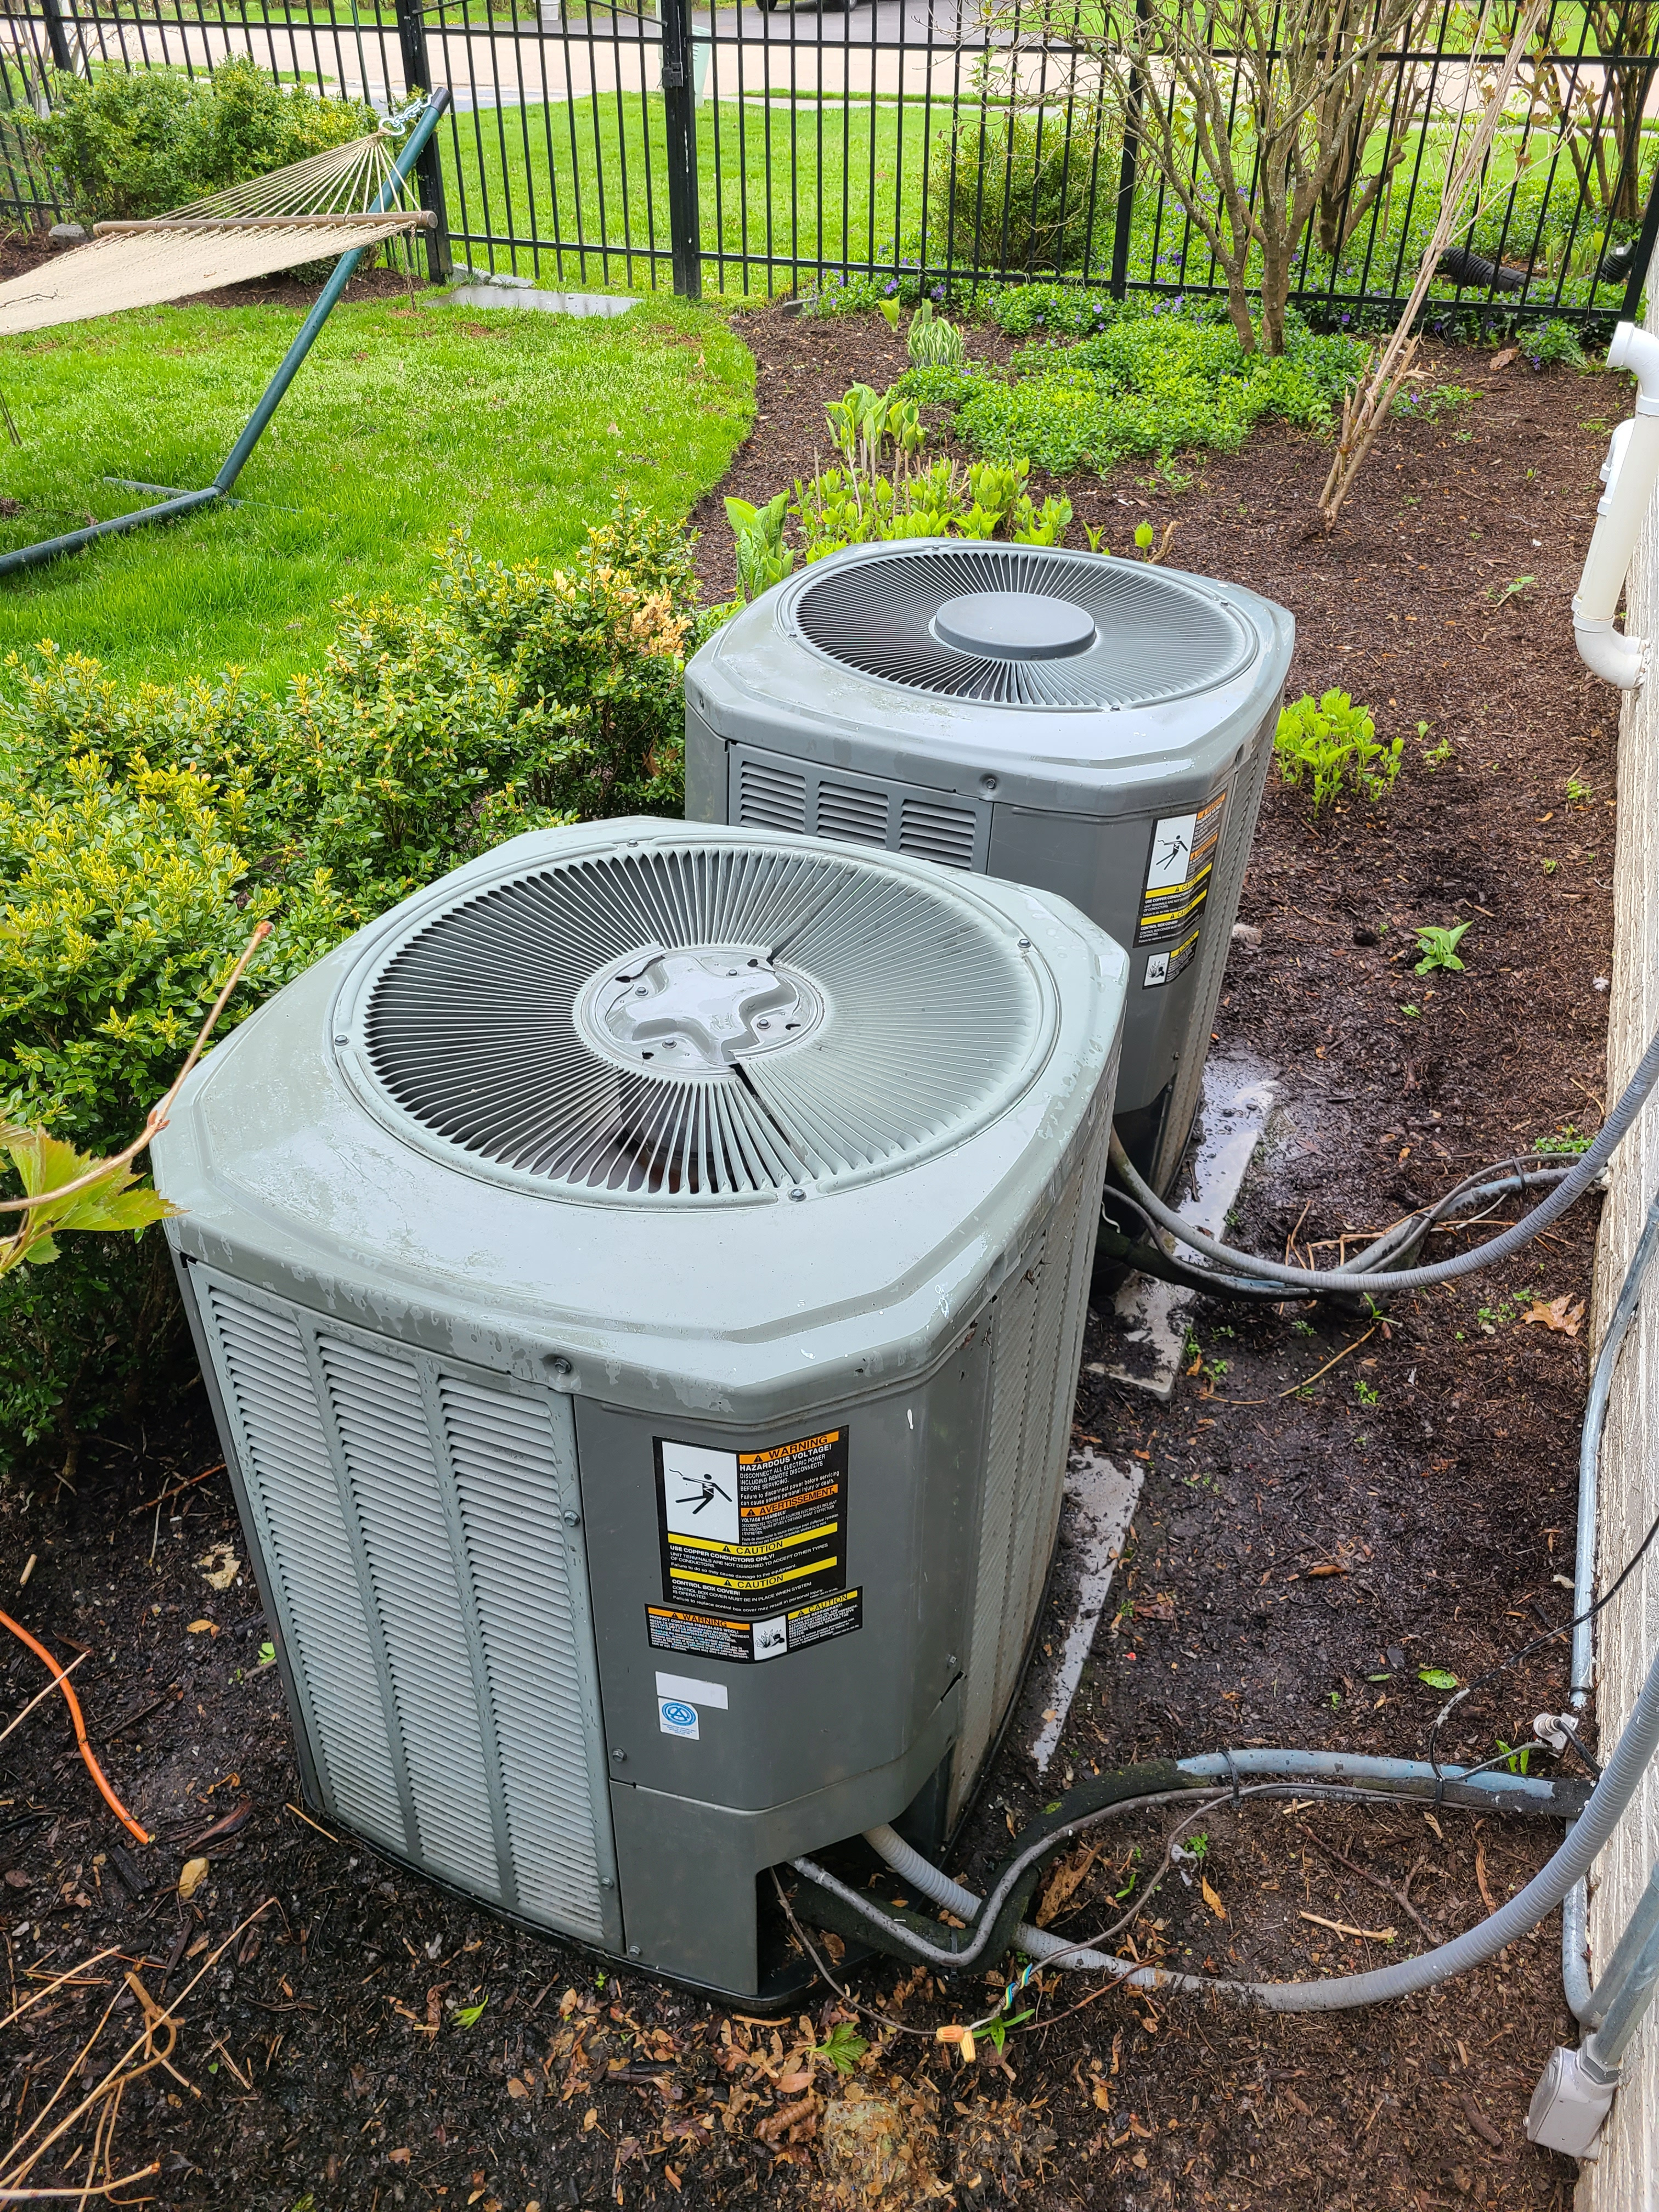 Two Trane air conditioning systems cleaned and checked, repairing to make ready for summer.